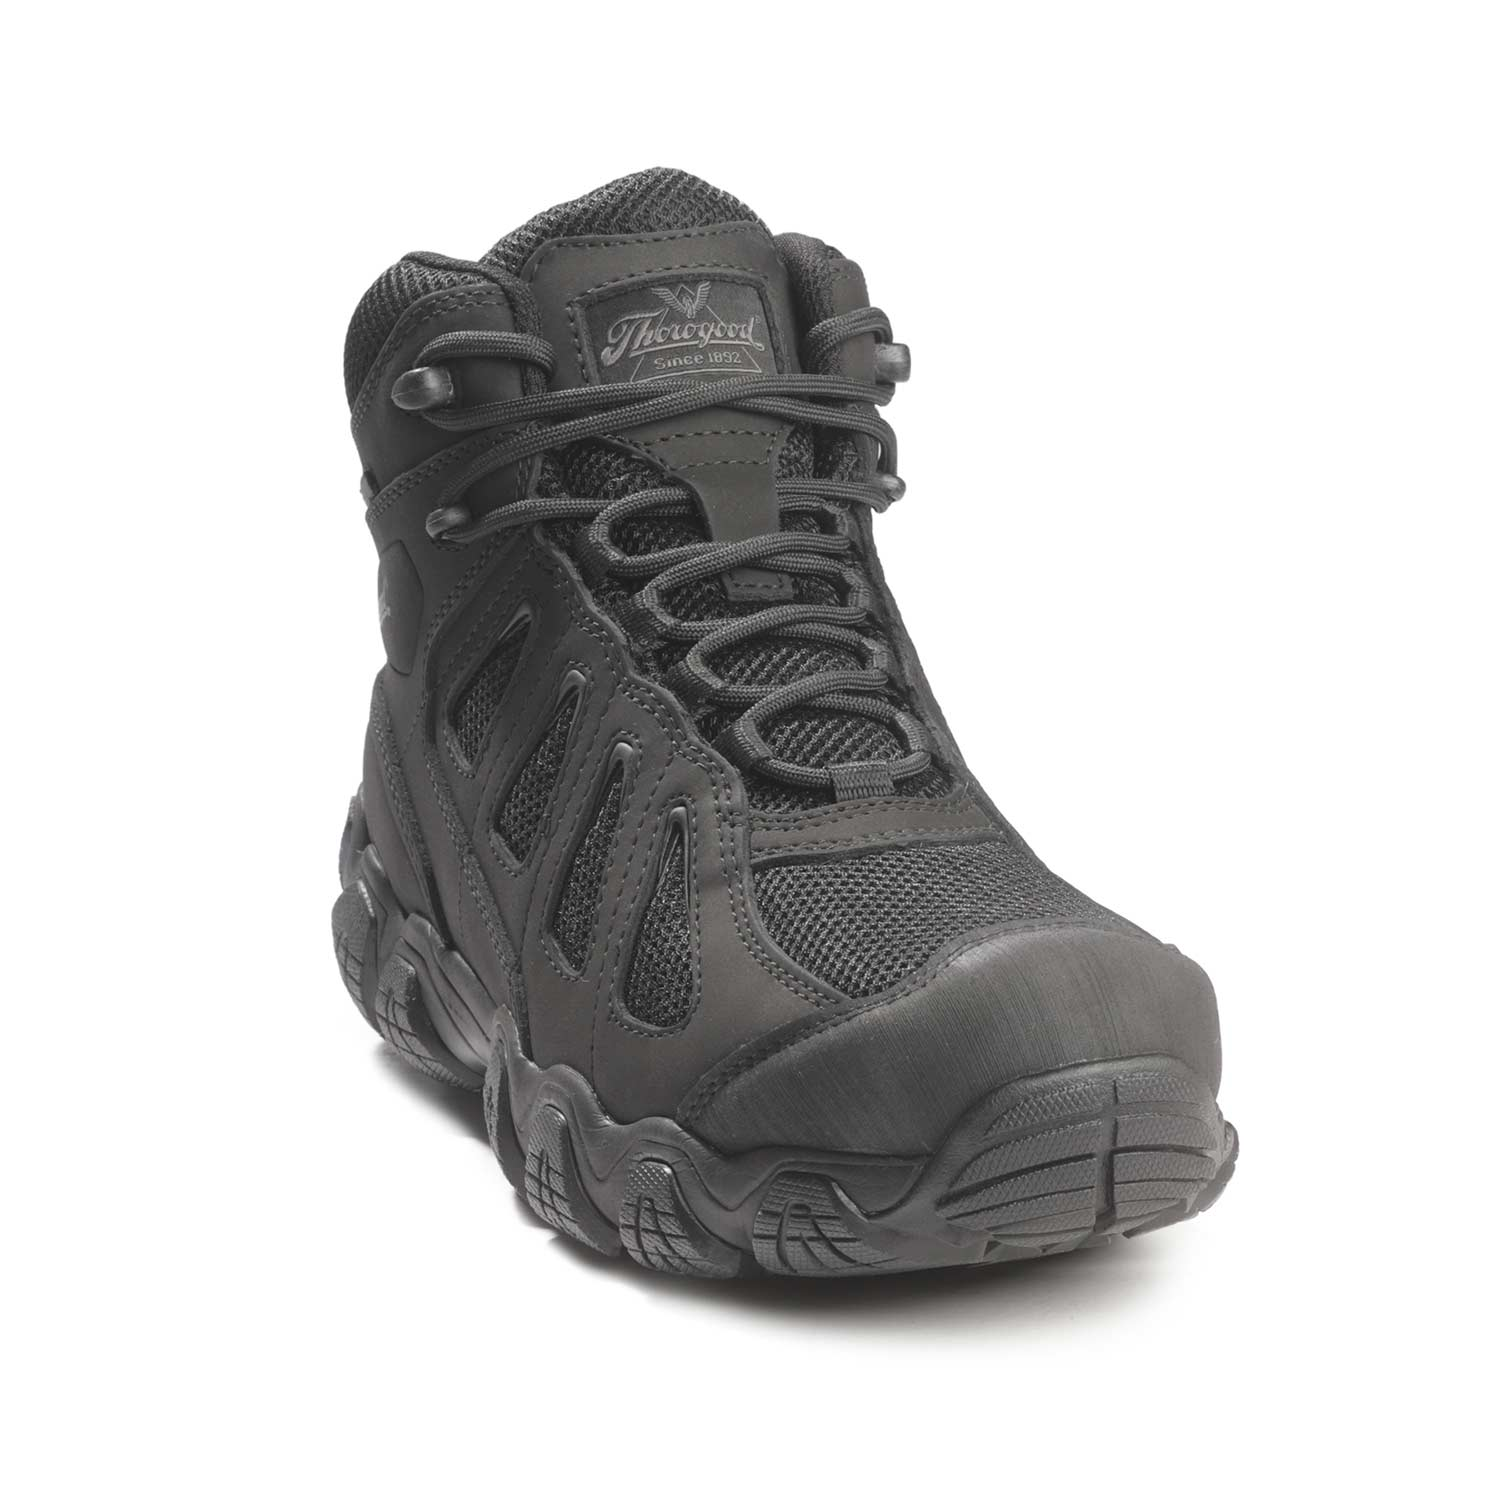 Thorogood Crosstrex Waterproof Mid